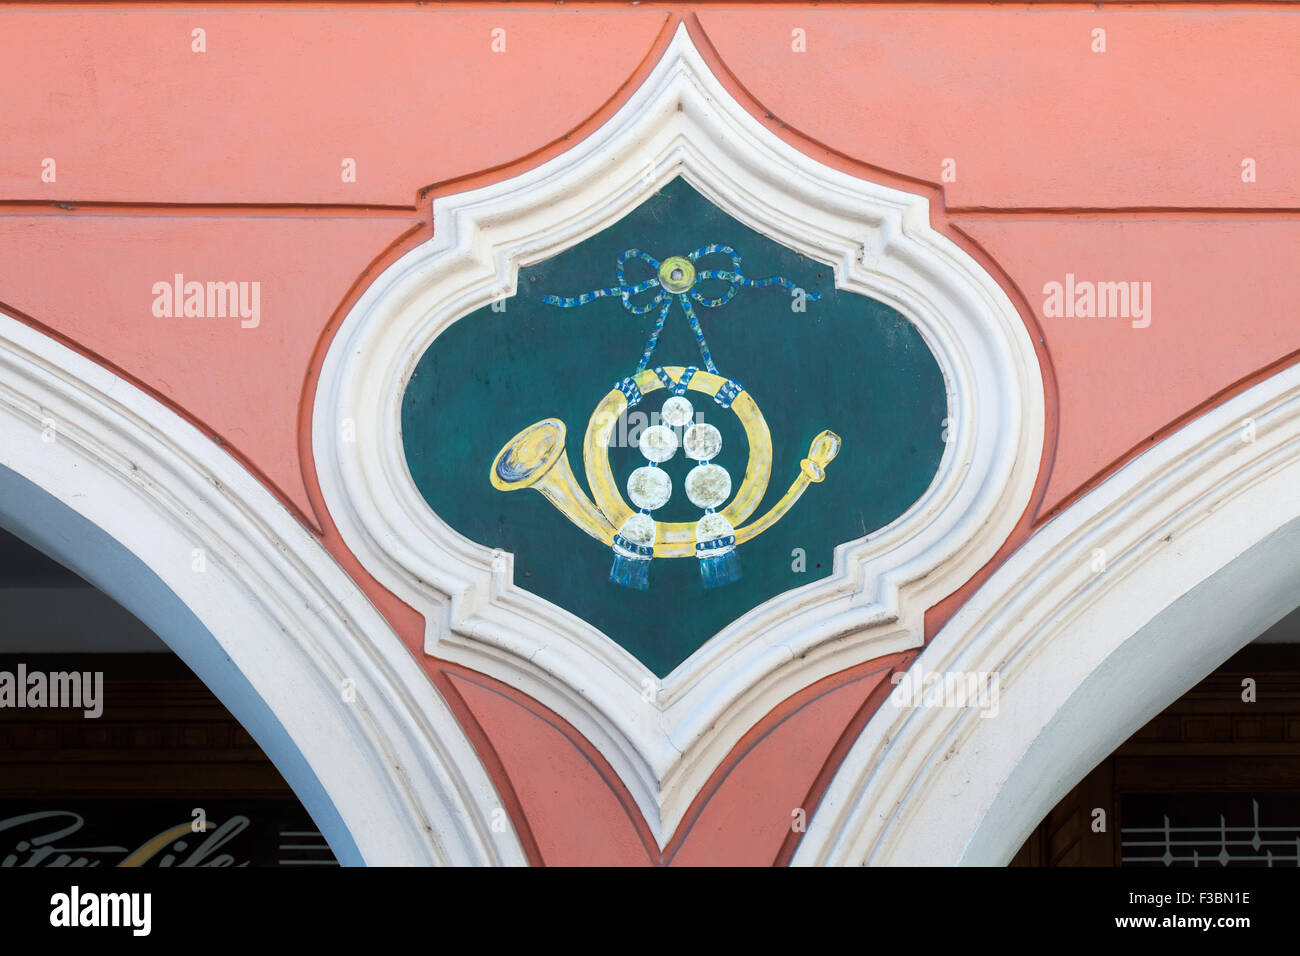 Post horn depicted on the medieval house sign at Premysl Otakar II Square in Ceske Budejovice, South Bohemia, Czech - Stock Image